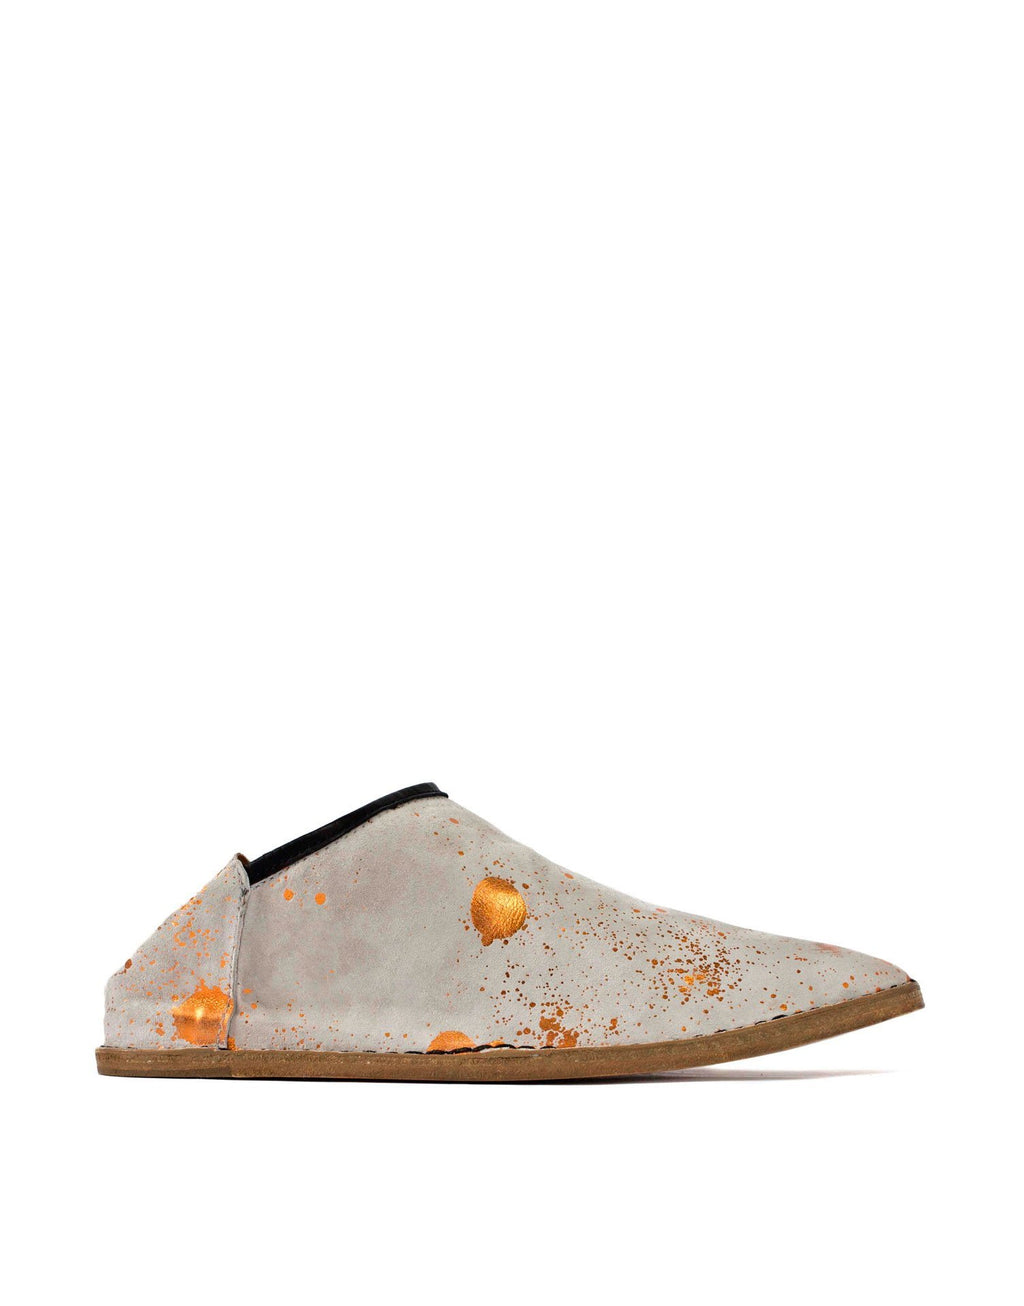 Grey and orange splash slip on slipper shoe, custom artwork by London designer Georgina Goodman, effortless style, style at any age, Thandie Newton has a pair of these ones